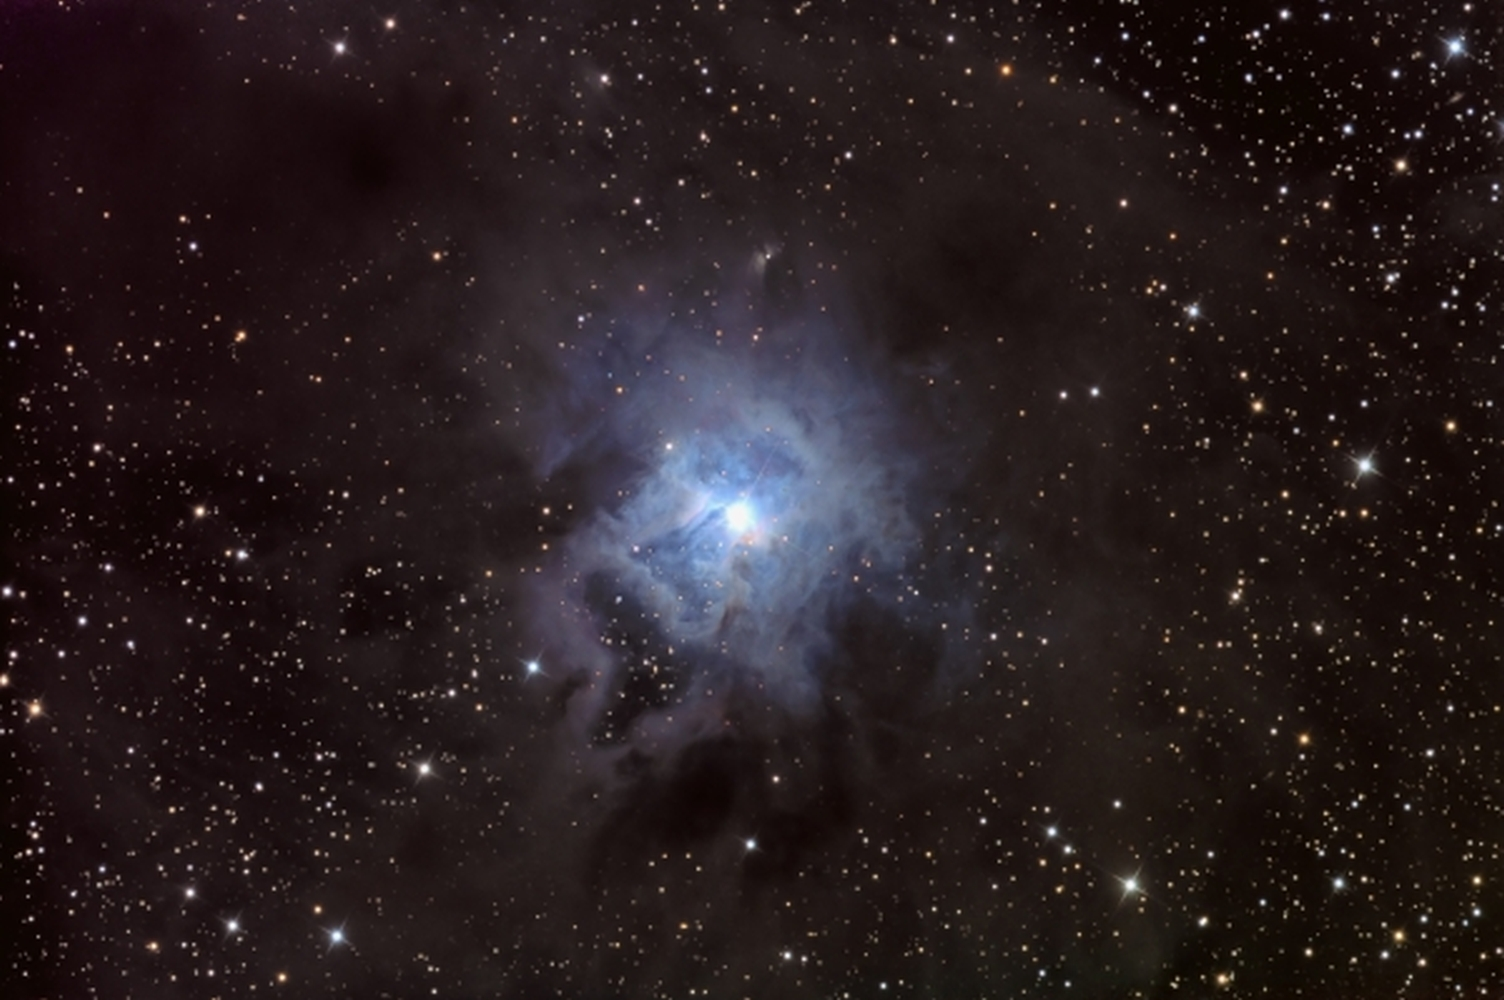 NGC 7023 from BMV Observatories